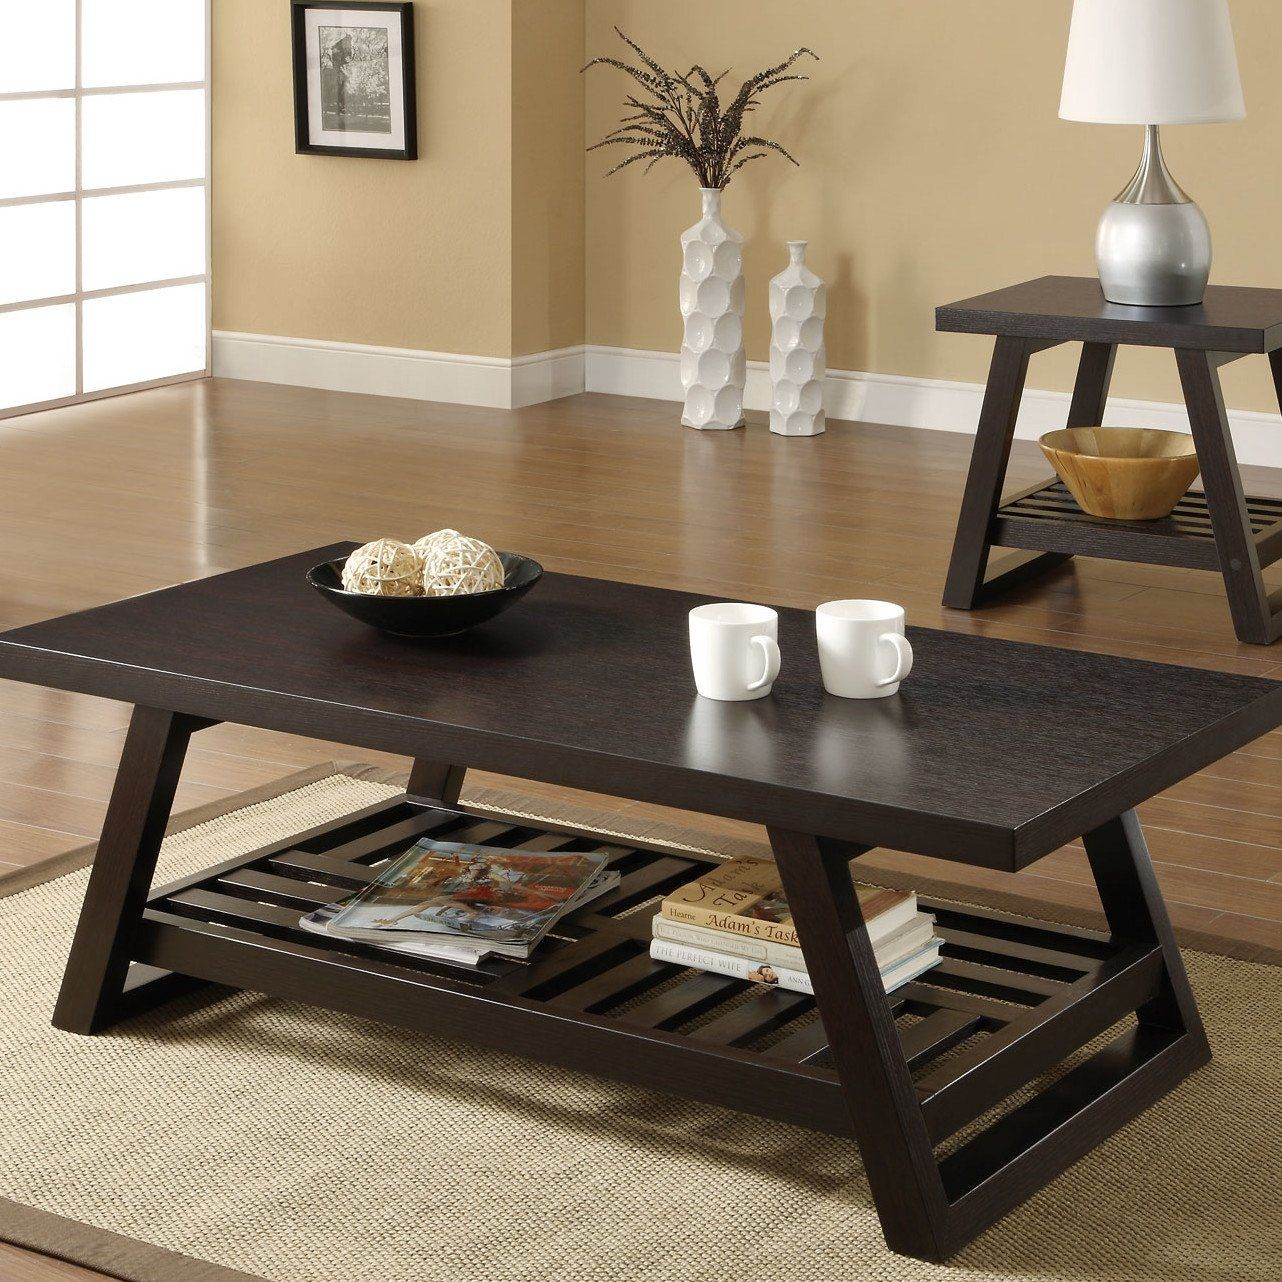 Best Contemporary Coffee Table With Slatted Bottom Shelf In 400 x 300